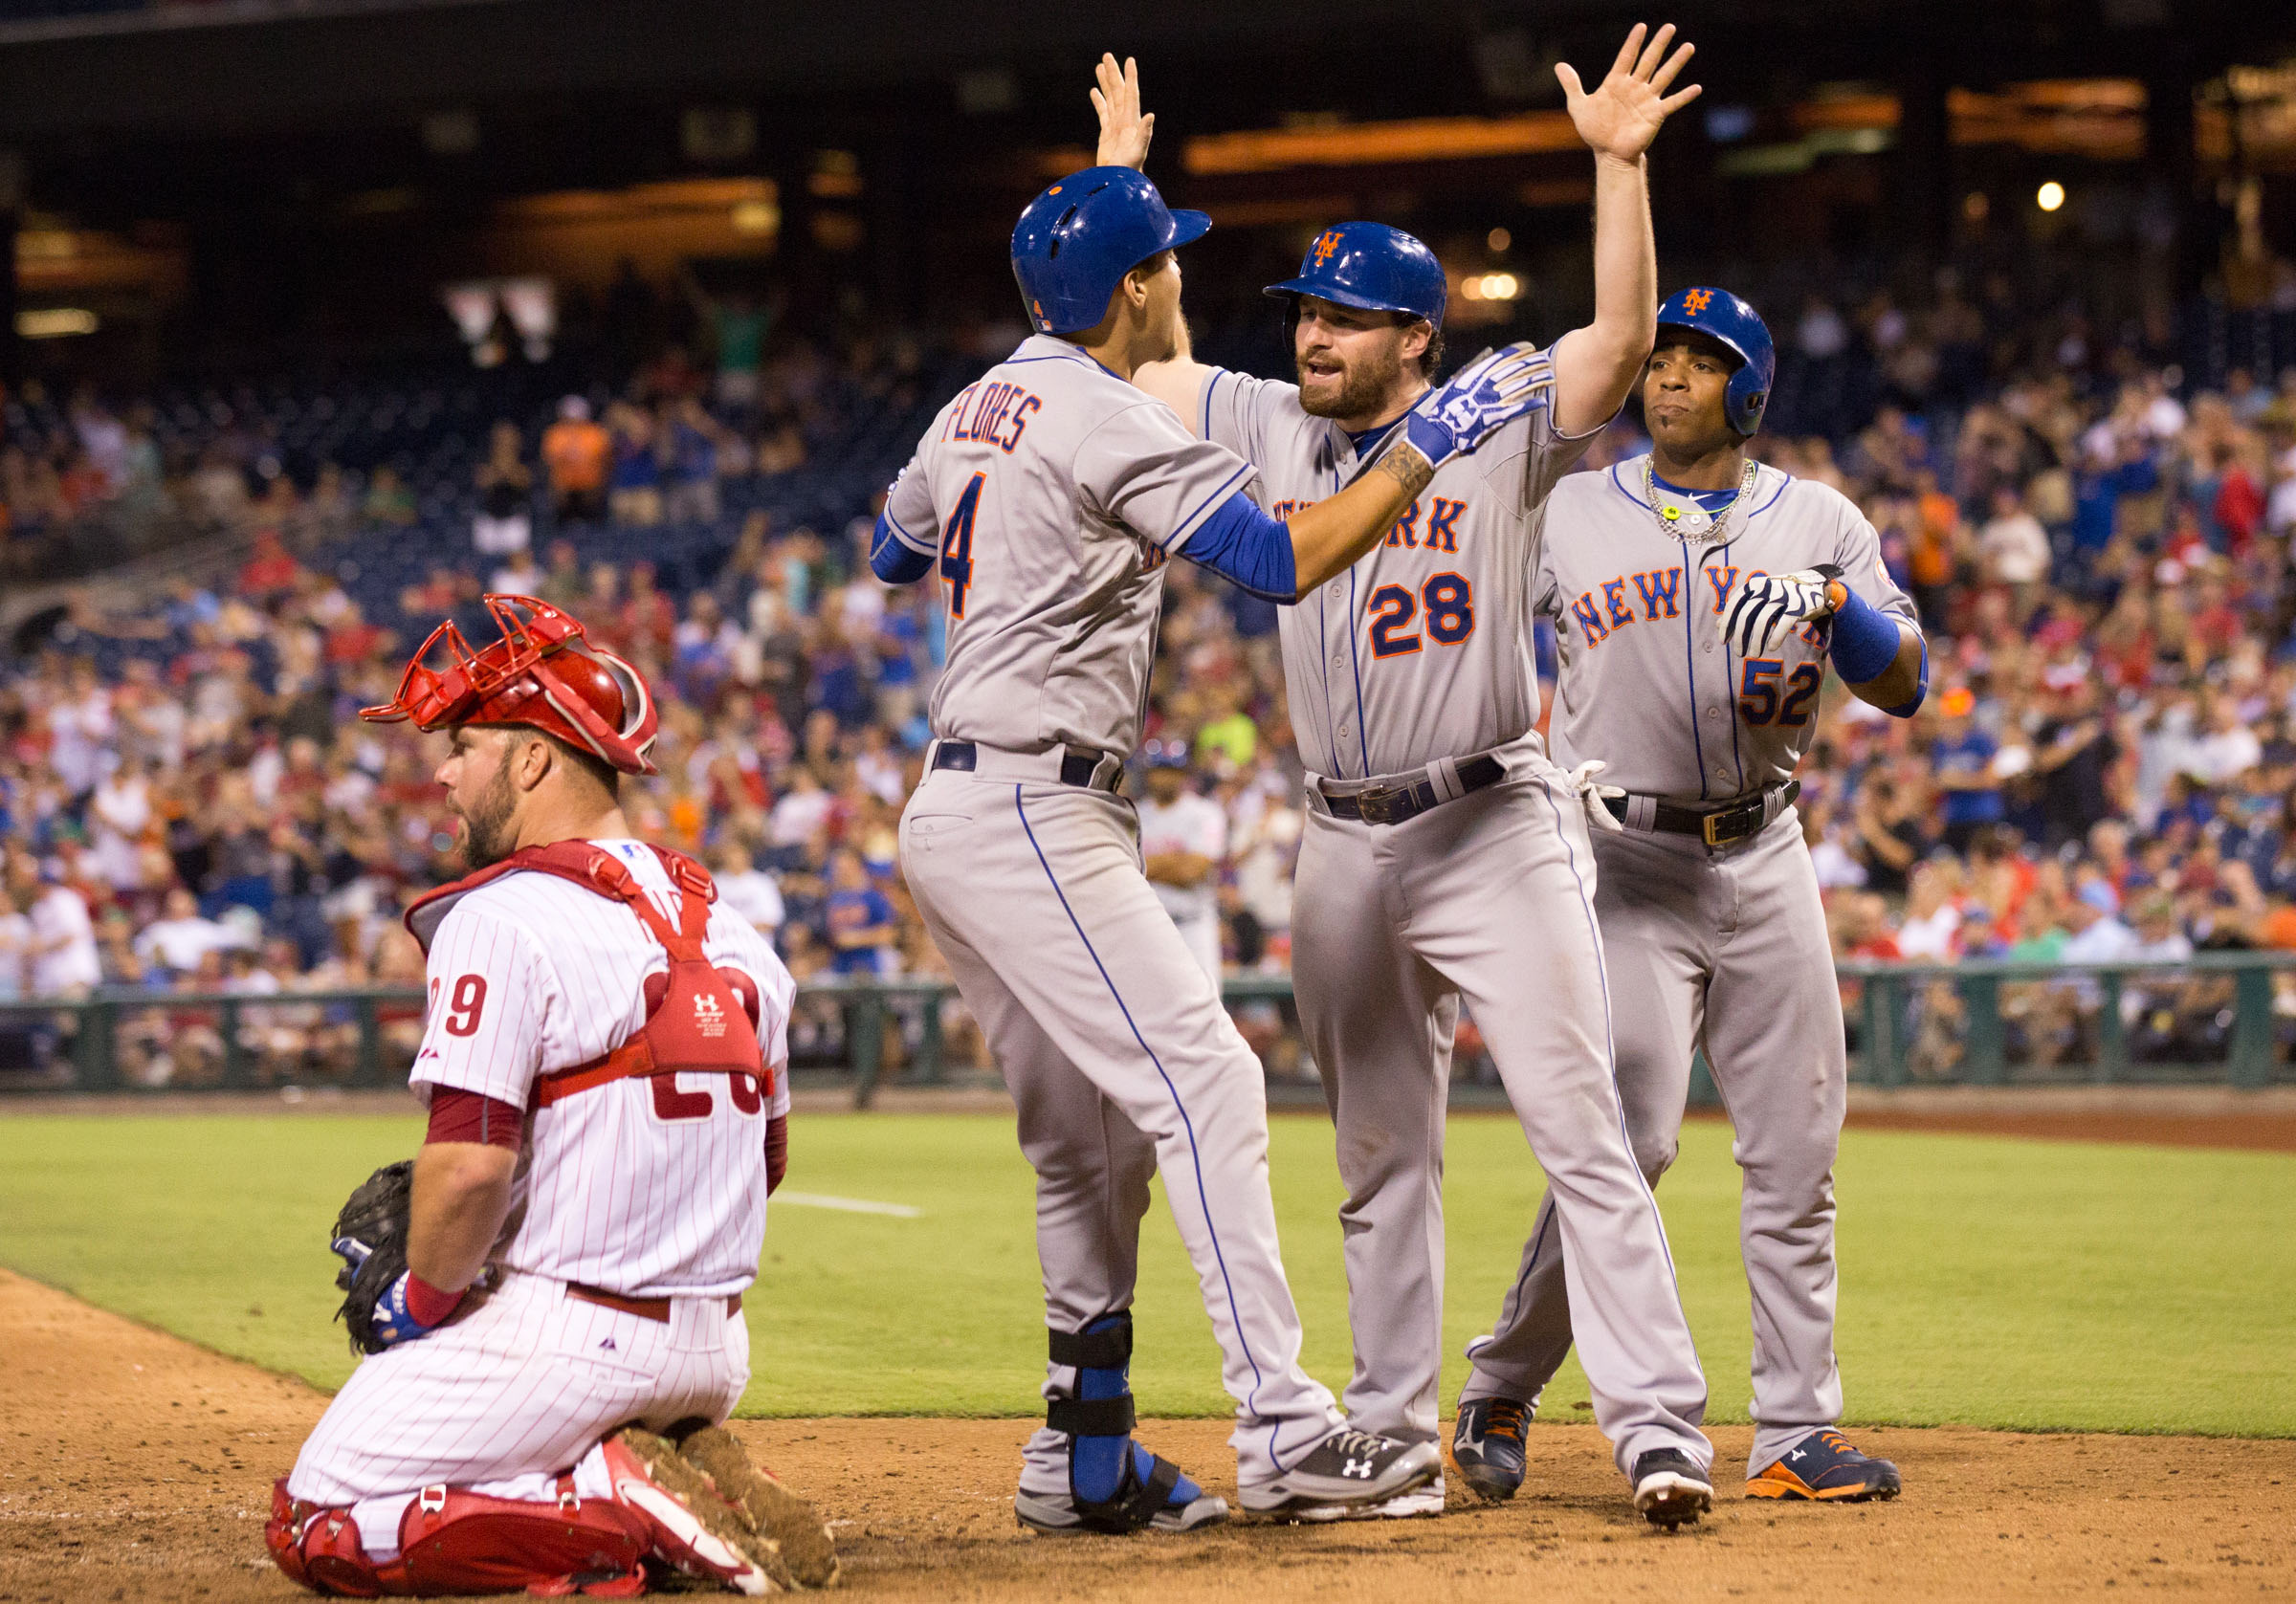 After the Rockies hung nine runs on the Mets twice over the weekend but STILL got swept, the Phillies blew a 7-2 lead against them last night. The Nats will need some of the Mets opponents to start cashing in.